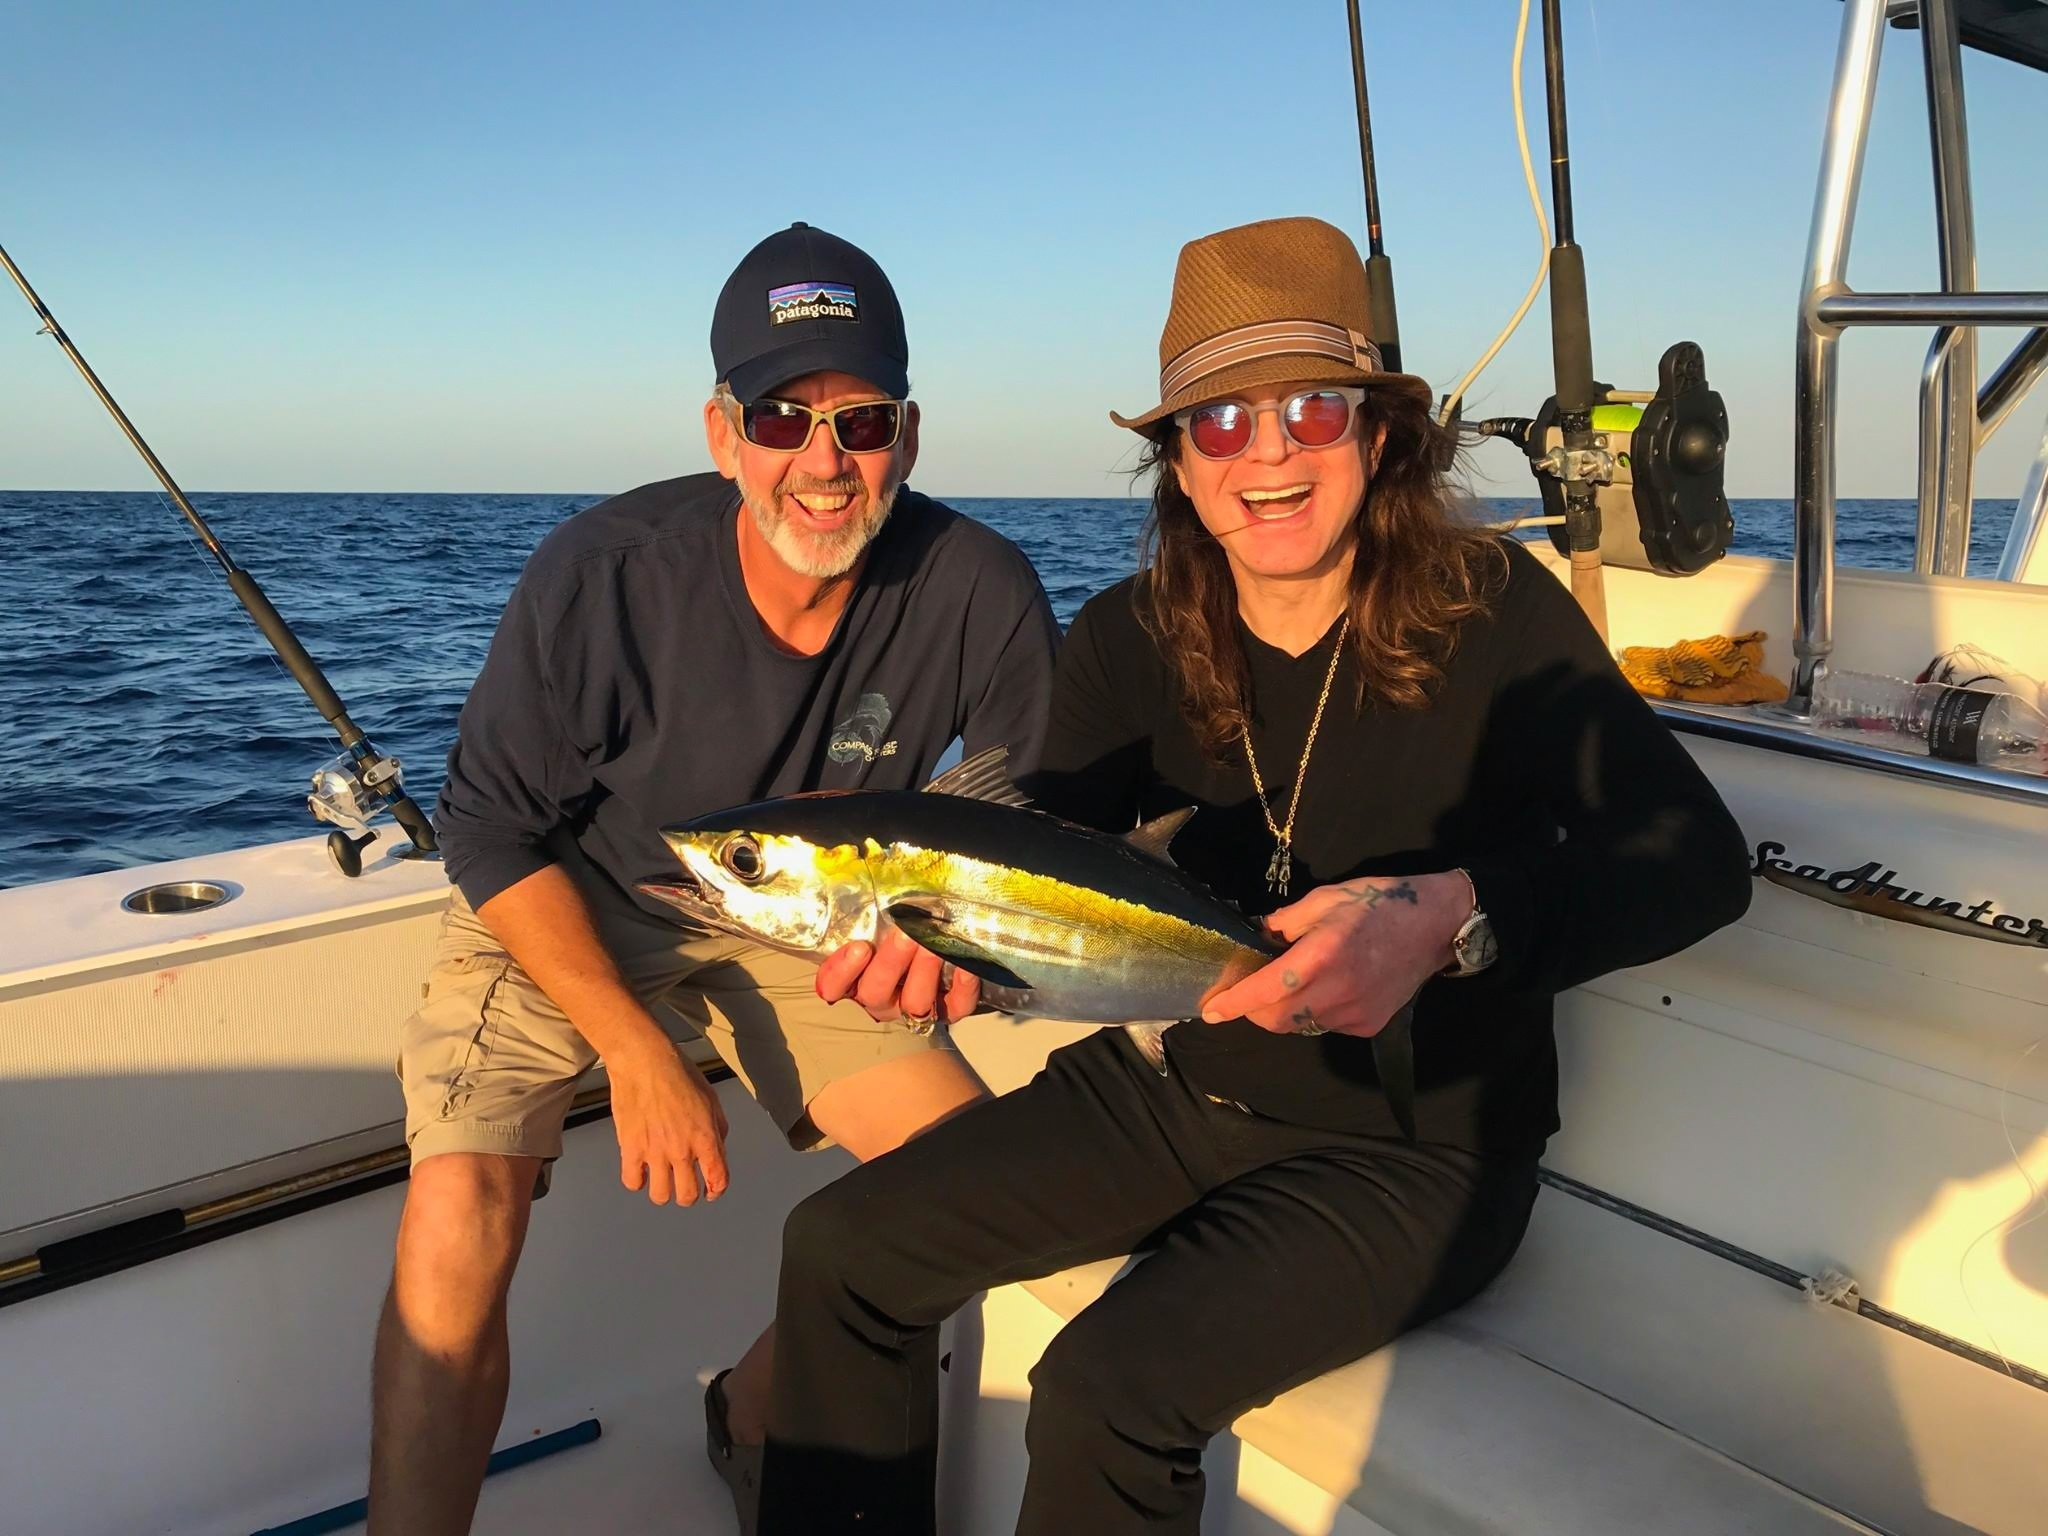 https://0201.nccdn.net/4_2/000/000/082/8ea/key-west-fishing-charters-compass-rose-37-2048x1536-2048x1536.jpg